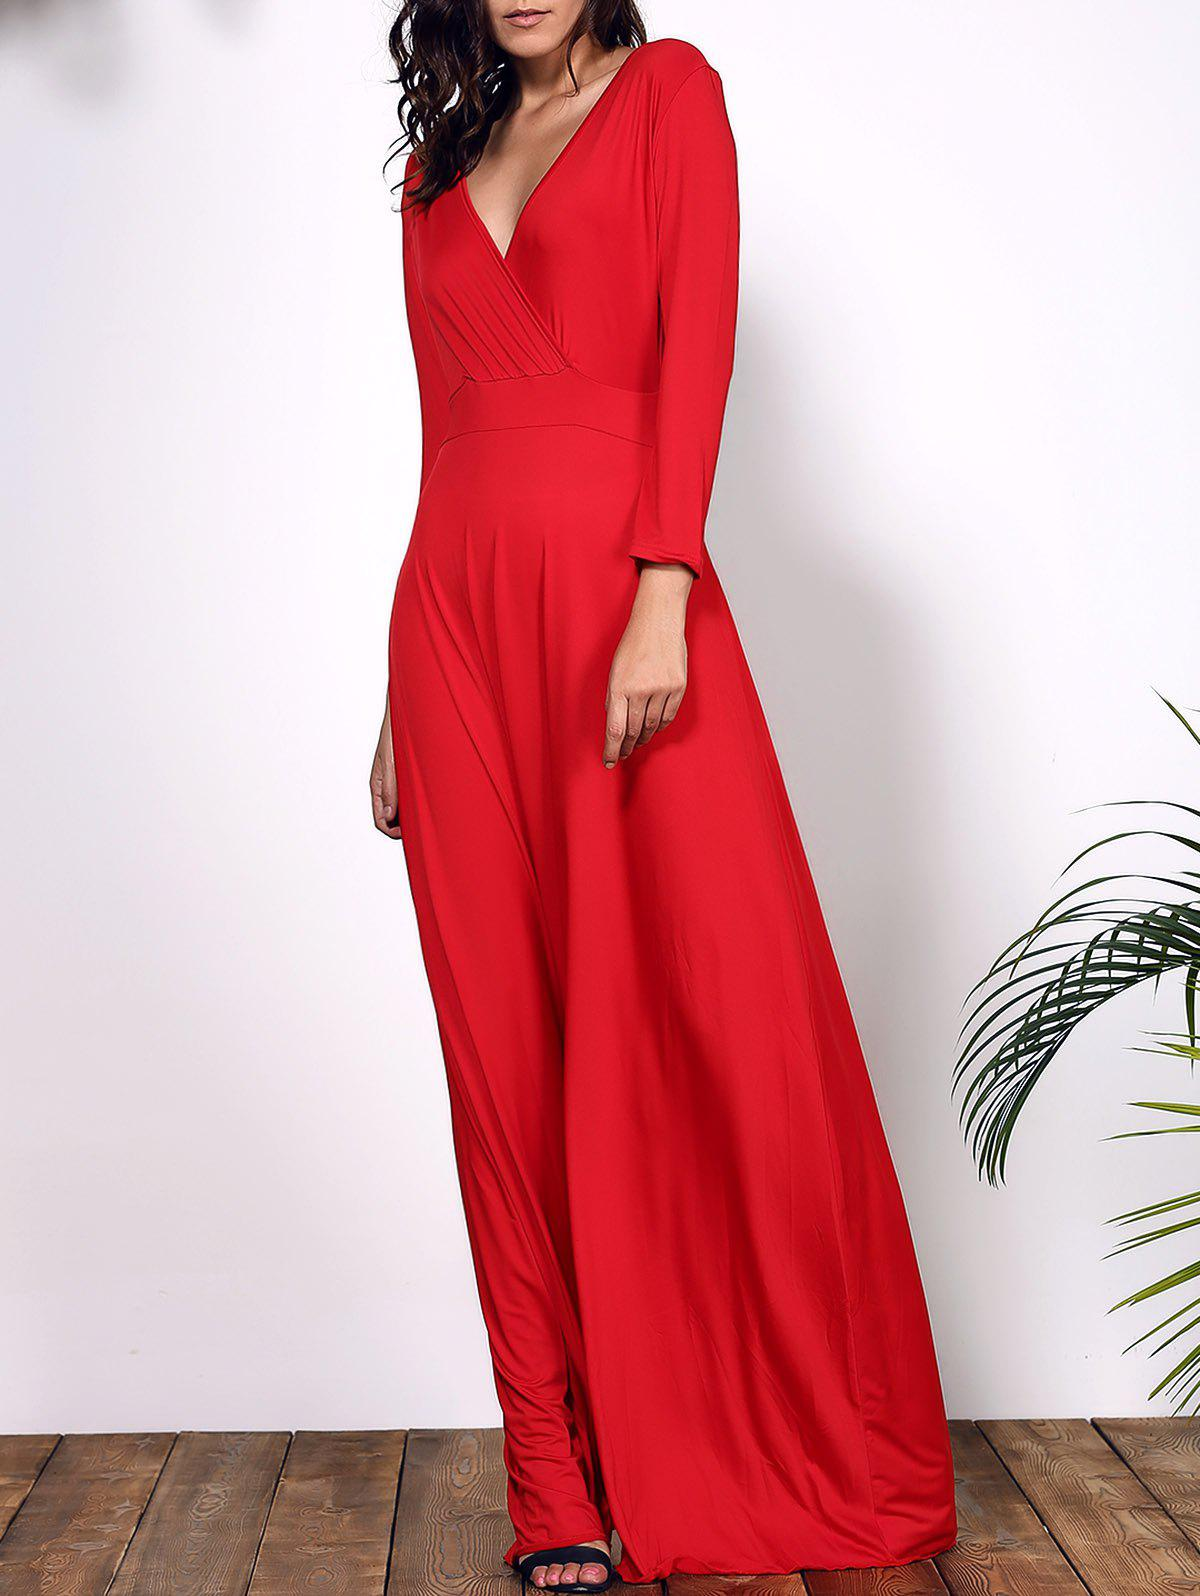 Women's Plunging Neckline 3/4 Sleeve Plus Size Solid Color Dress - RED 3XL